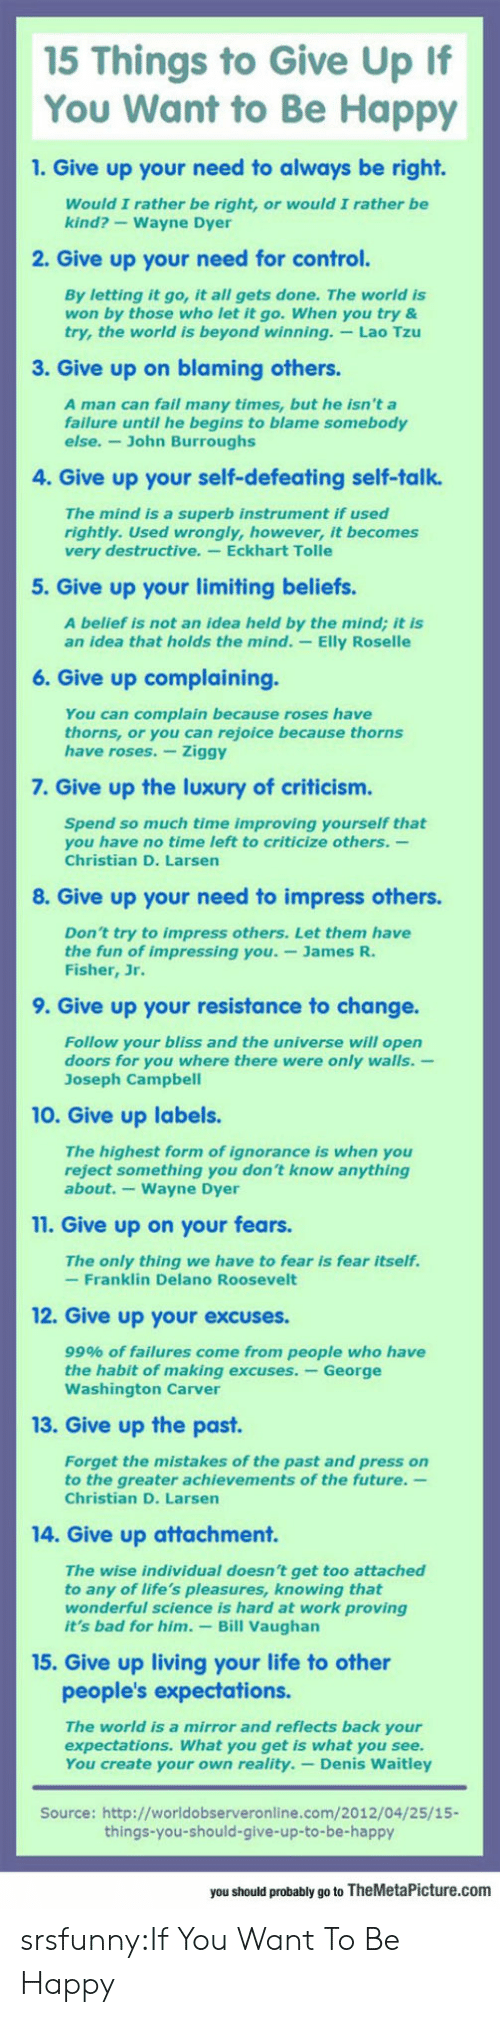 Rightly: 15 Things to Give Up If  You Want to Be Happy  1. Give up your need to always be right.  Would I rather be right, or would I rather be  kind?-Wayne Dyer  2. Give up your need for control.  By letting it go, it all gets done. The world is  won by those who let it go. When you try &  try, the world is beyond winning. Lao Tzu  3. Give up on blaming others  A man can fail many times, but he isn't a  failure until he begins to blame somebody  else.- John Burroughs  4. Give up your self-defeating self-talk.  The mind is a superb instrument if used  rightly. Used wrongly, however, it becomes  very destructive. Eckhart Tolle  5. Give up your limiting beliefs.  A belief is not an idea held by the mind; it is  an idea that holds the mind. -Elly Roselle  6. Give up complaining.  You can complain because roses have  thorns, or you can rejoice because thorns  have roses. Ziggy  7. Give up the luxury of criticism.  Spend so much time improving yourself that  you have no time left to criticize others.-  Christian D. Larsen  8. Give up your need to impress others.  Don't try to impress others. Let them have  the fun of impressing you.-James R.  Fisher, Jr.  9. Give up your resistance to change.  Follow your bliss and the universe will open  doors for you where there were only walls.-  Joseph Campbel  10. Give up labels.  The highest form of ignorance is when you  reject something you don't know anything  about.-Wayne Dyer  11. Give up on your fears.  The only thing we have to fear is fear itself.  -Franklin Delano Roosevelt  12. Give up your excuses.  99% of failures come from people who have  the habit of making excuses. -George  Washington Carver  13. Give up the past  Forget the mistakes of the past and press on  to the greater achievements of the future.  Christian D. Larsen  14. Give up attachment.  The wise individual doesn't get too attached  to any of life's pleasures, knowing that  wonderful science is hard at work proving  it's bad for him. Bill Vaughan  15. Give